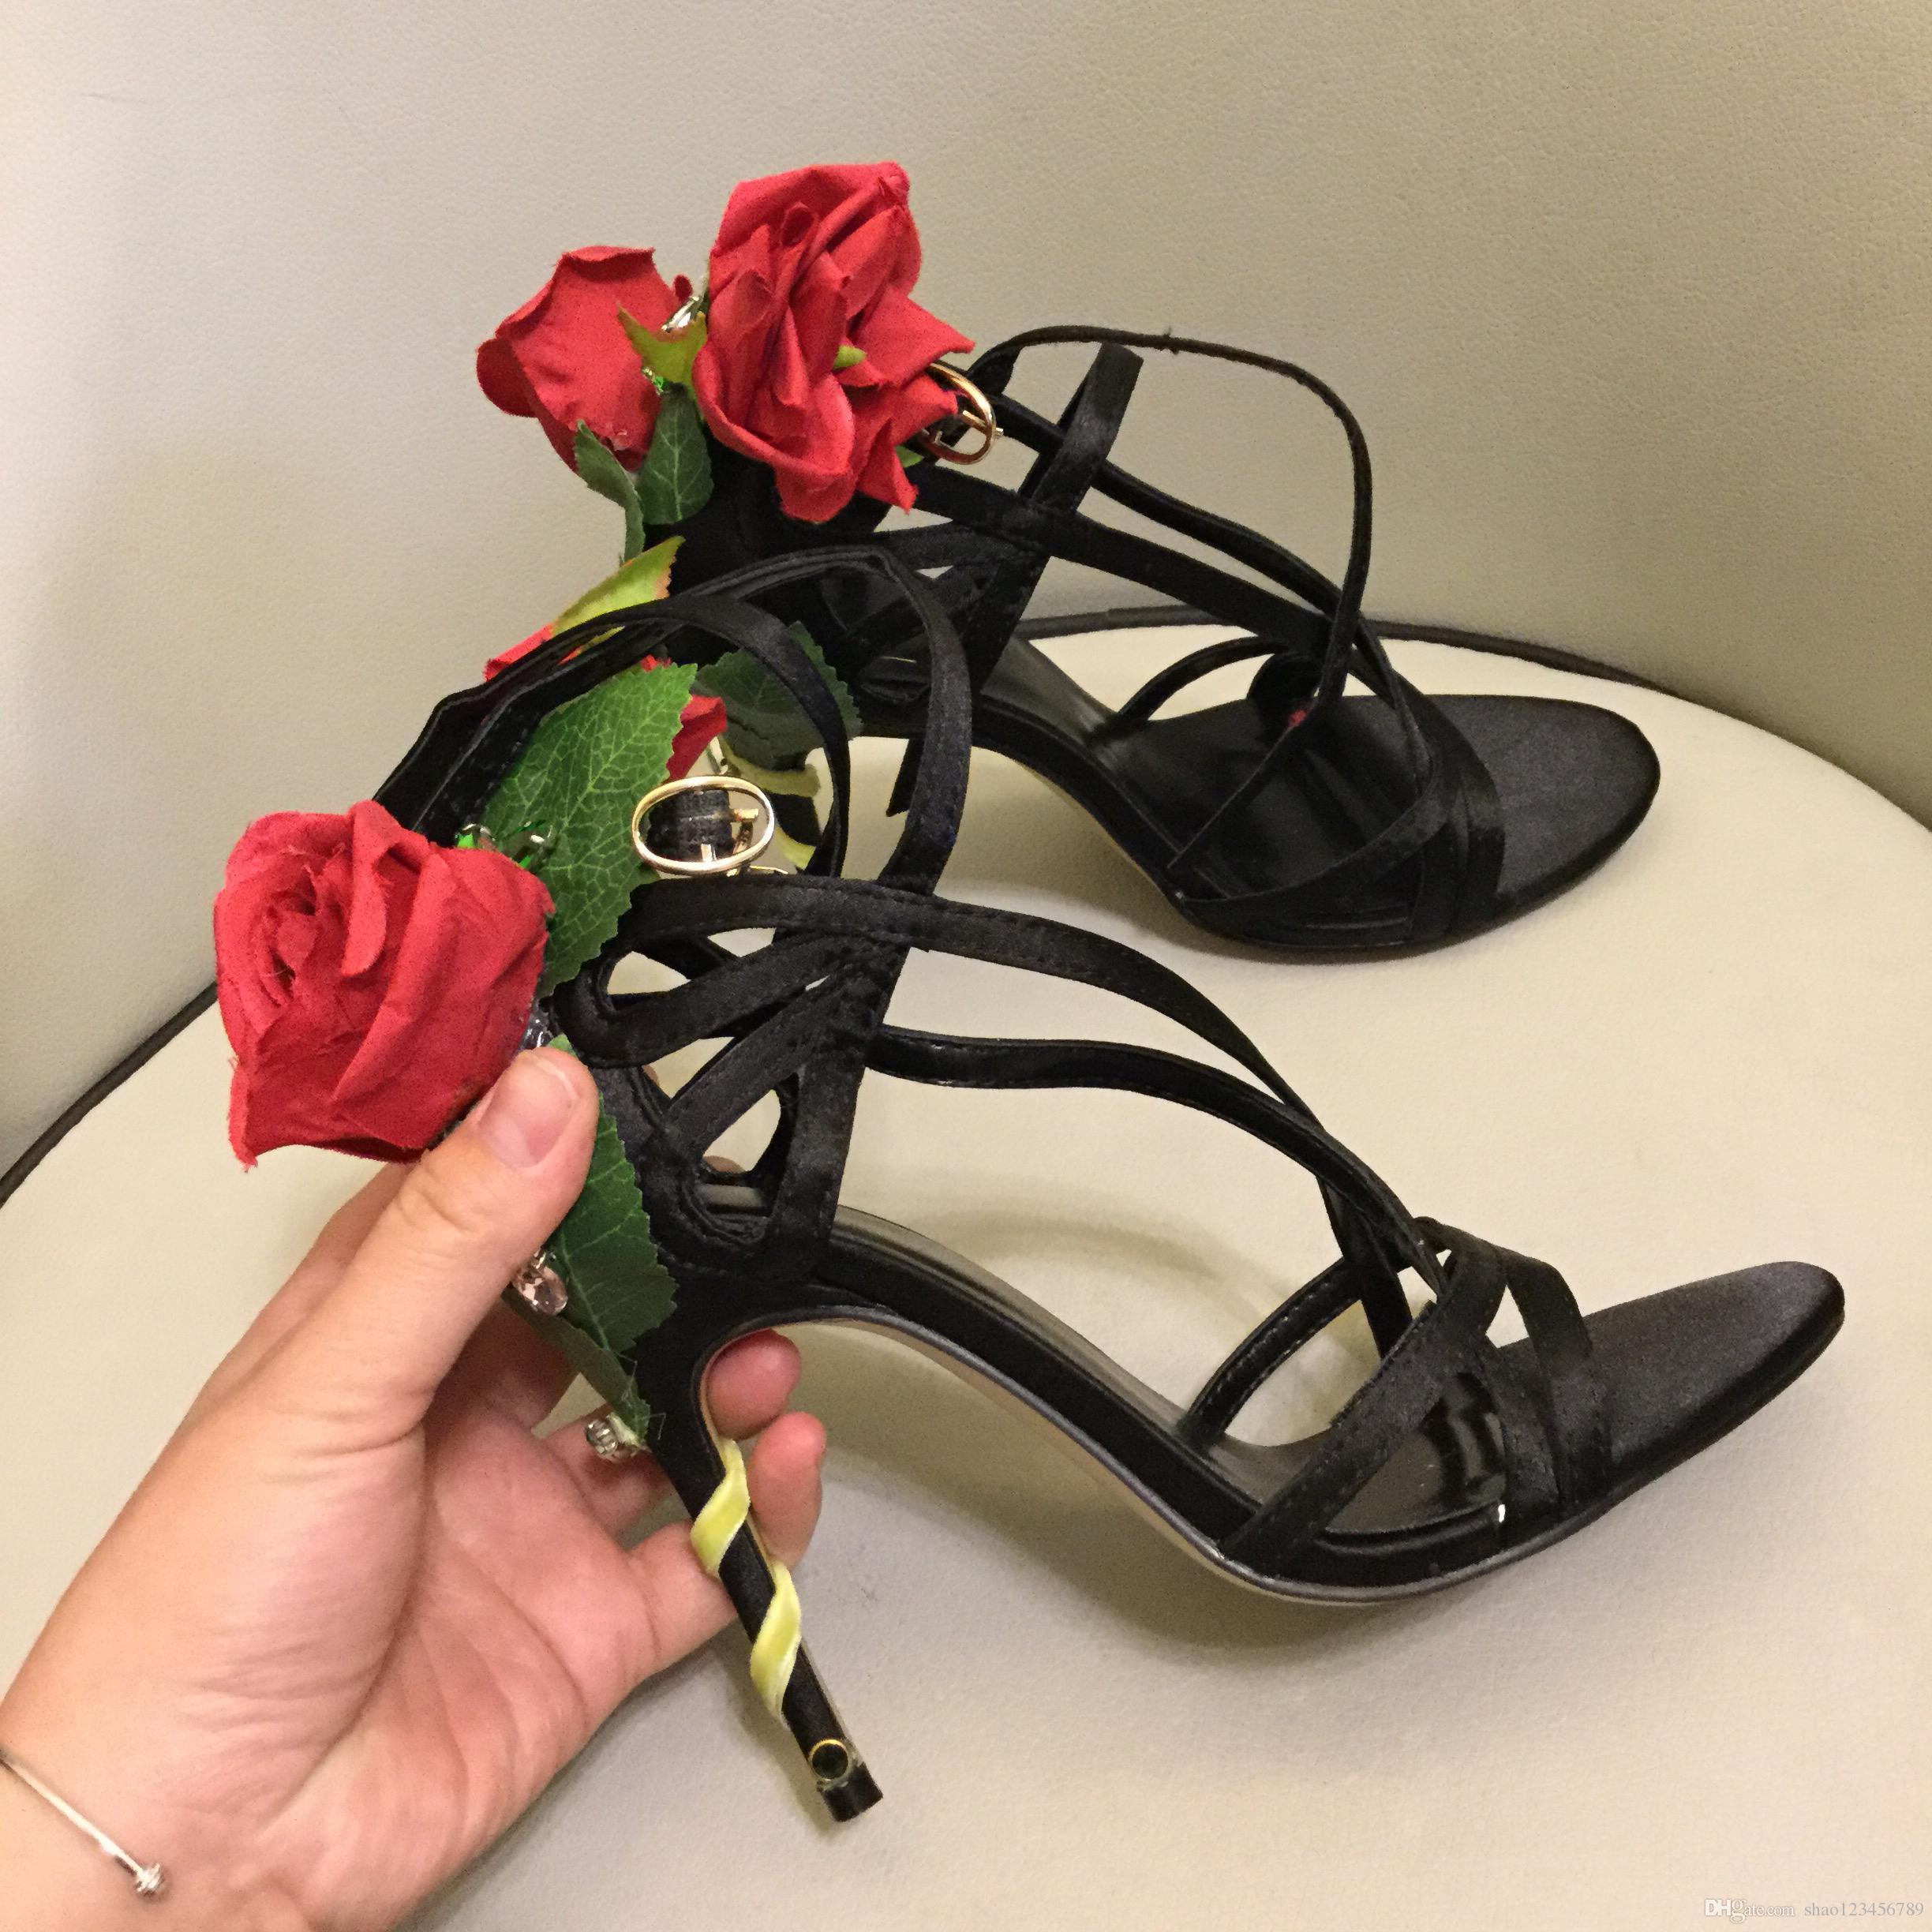 2019 Rose Flower Stiletto Heel Wedding Pumps Pink Satin Zapatos de novia Mujeres Tallas grandes Zapatos de vestir